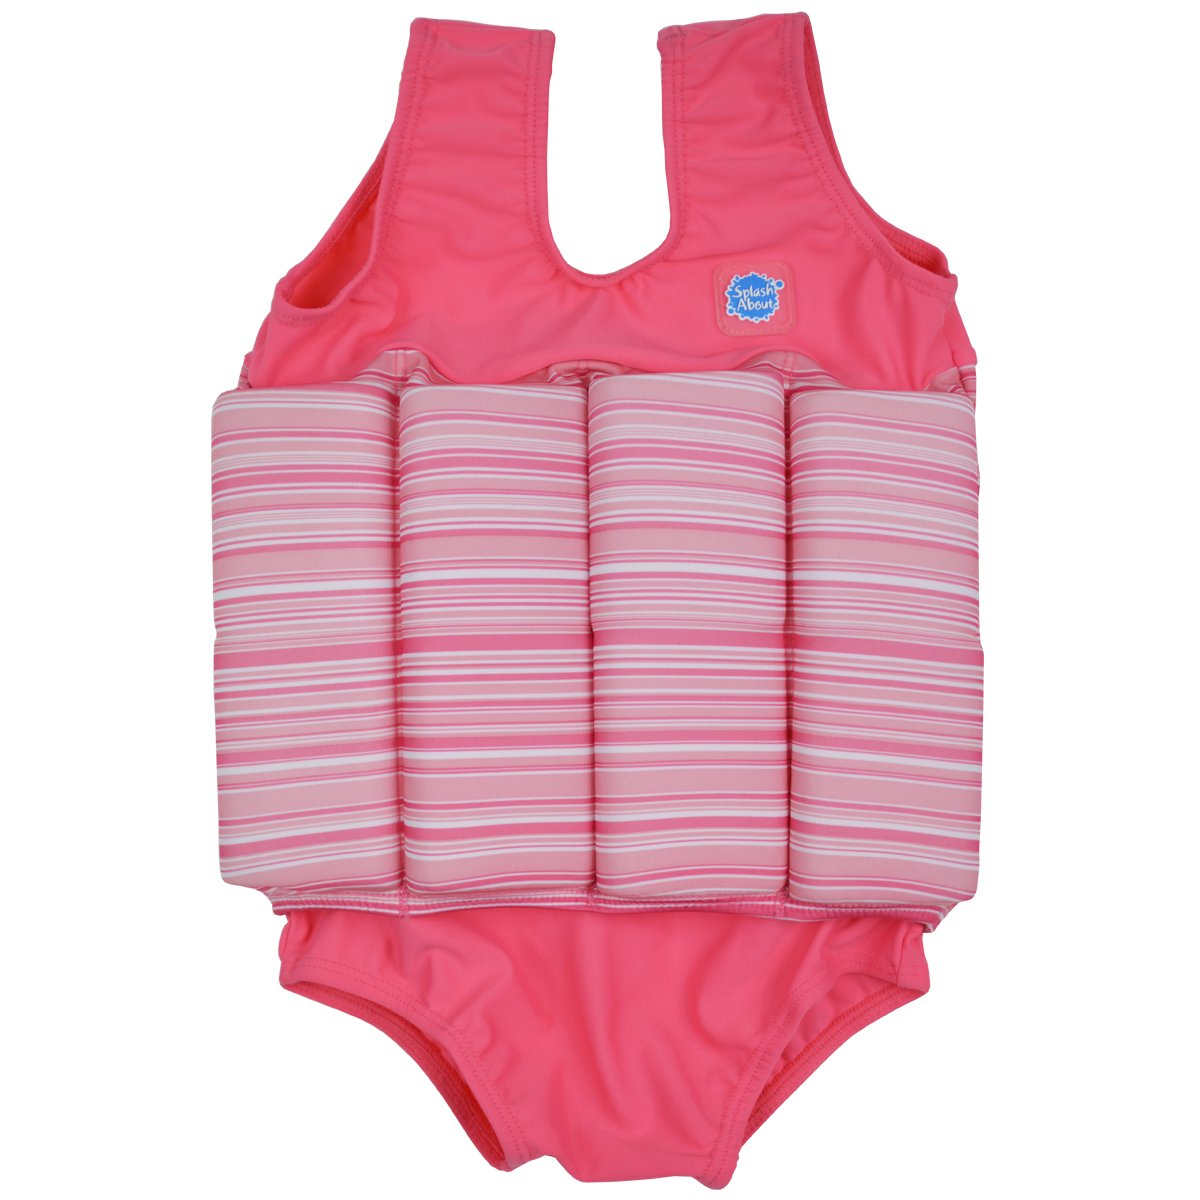 Splash About Collections Float Suit - Adjustable Buoyancy, 1-6 Years (Pink Classic, 4-6 Years (Chest: 61cm | Length: 43cm))